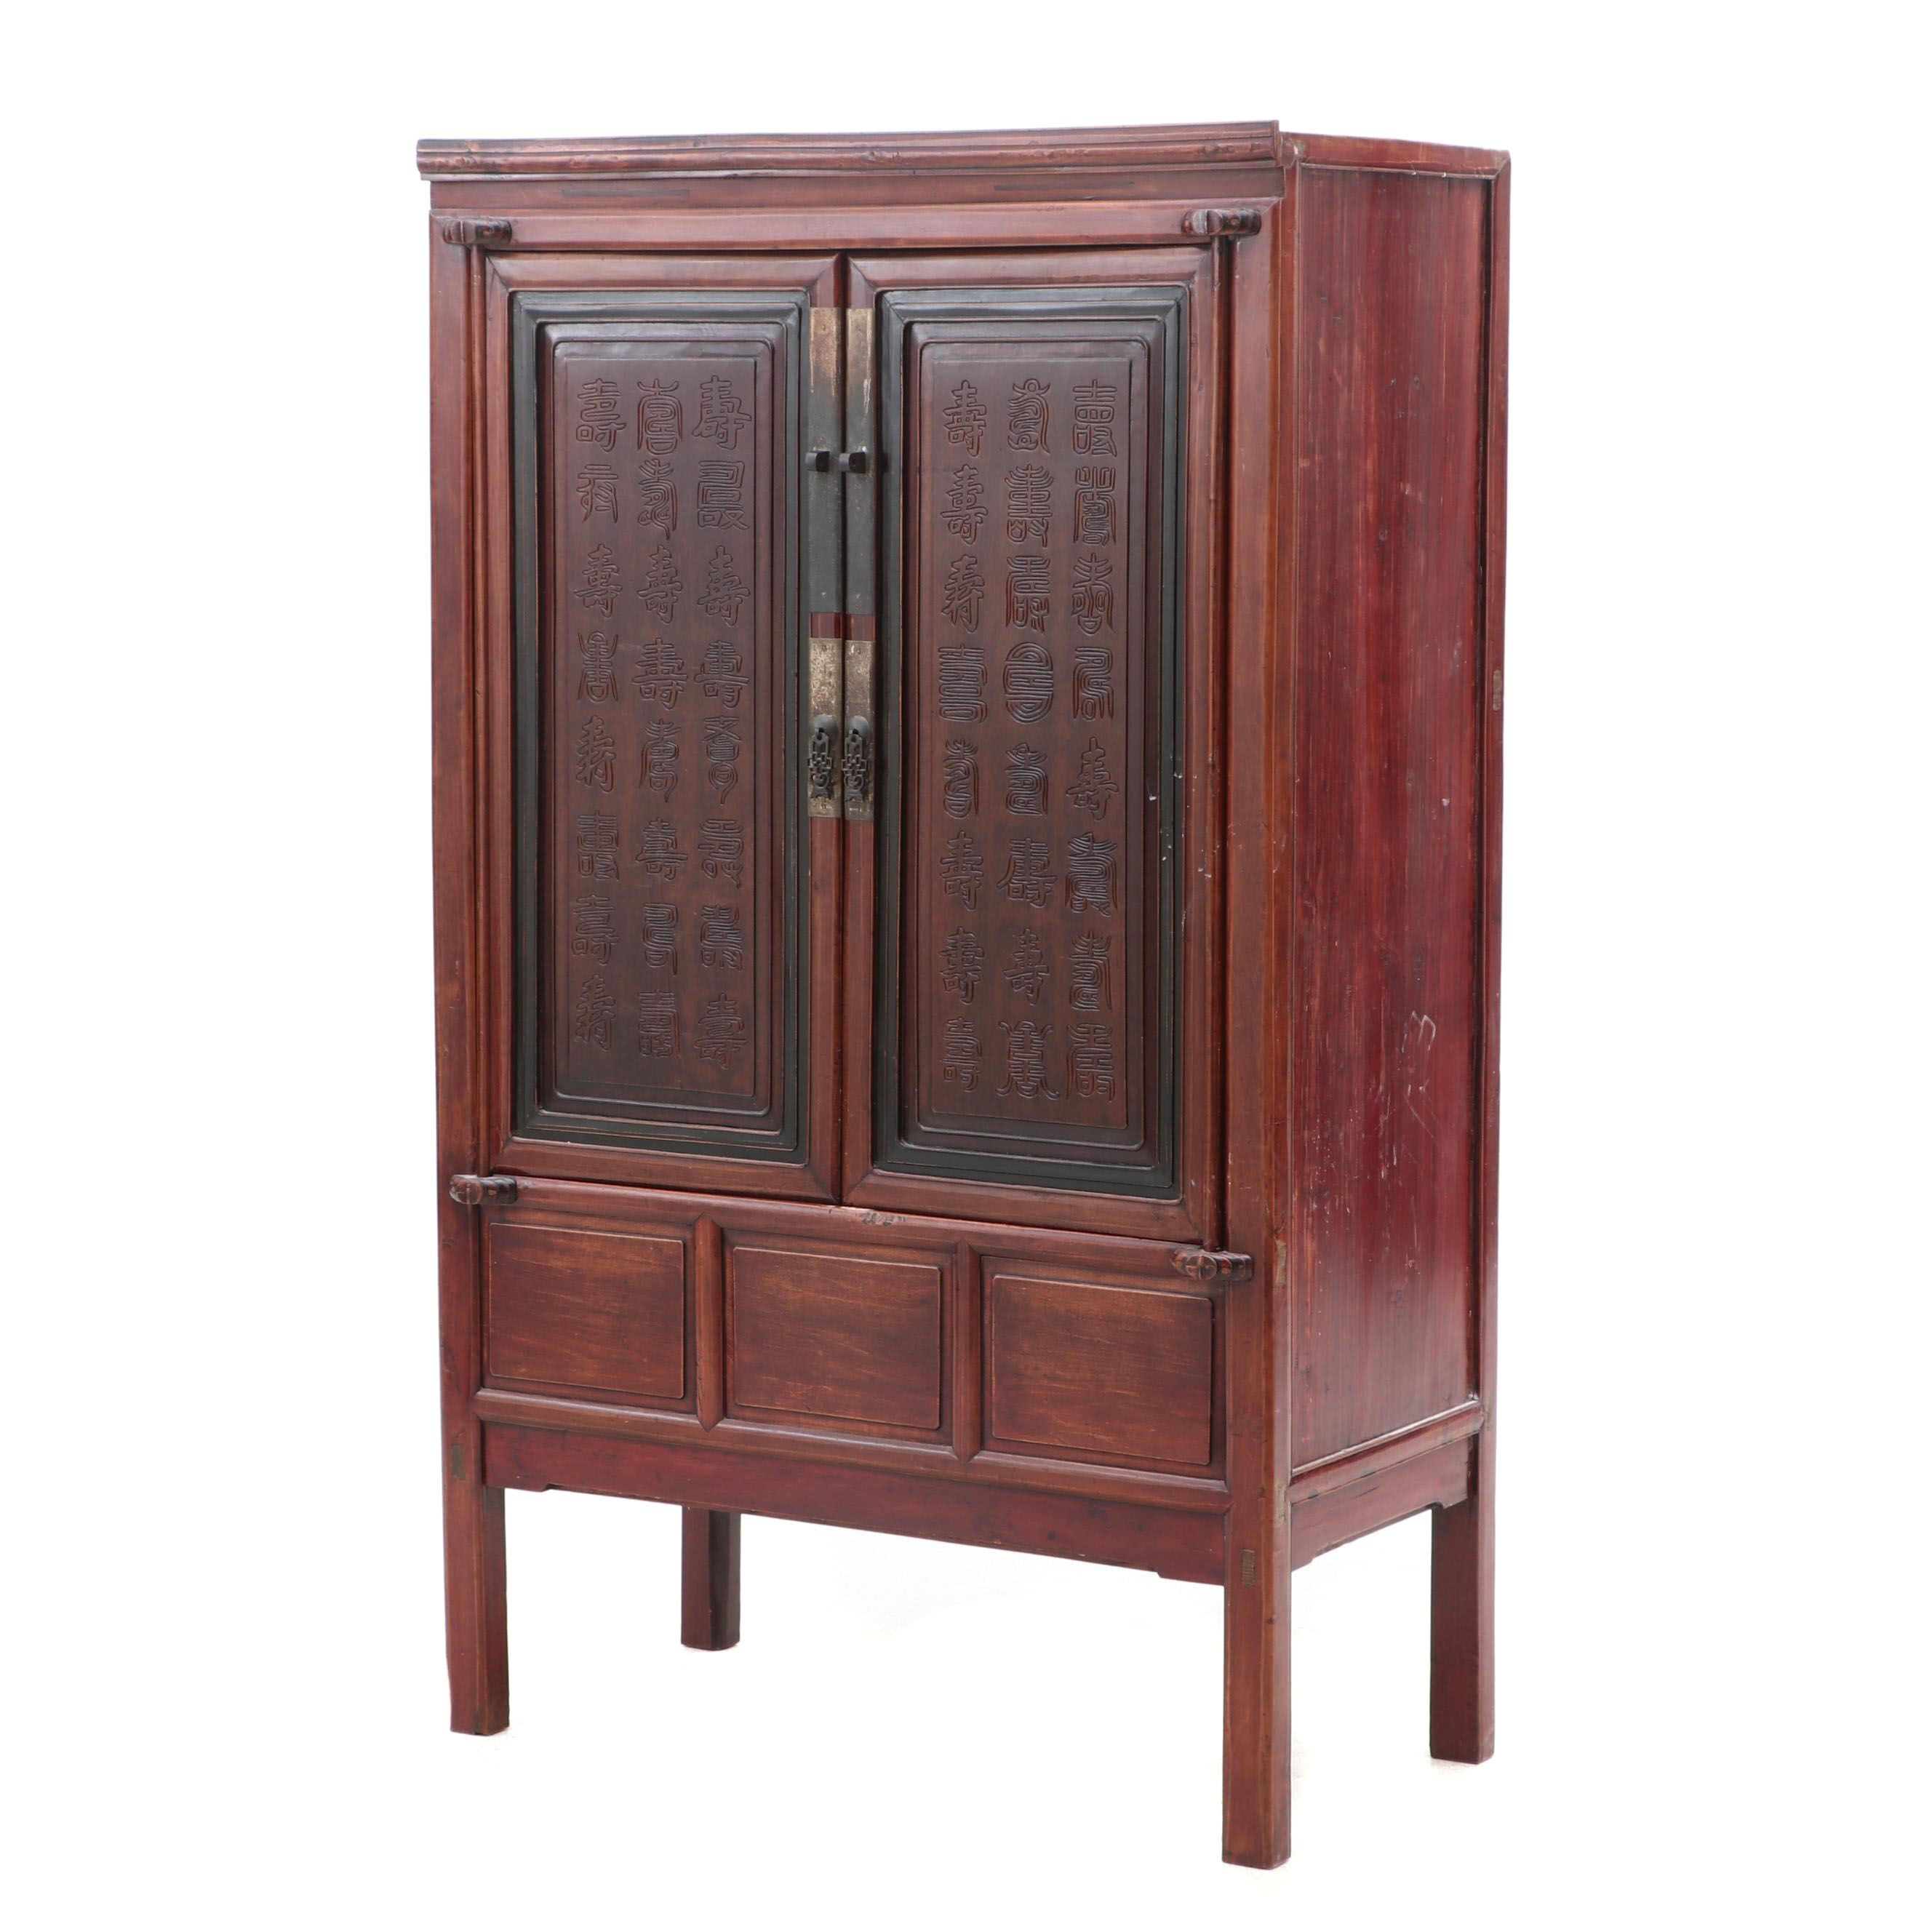 Chinese Pine and Elm Calligraphy Incised Cabinet, Contemporary